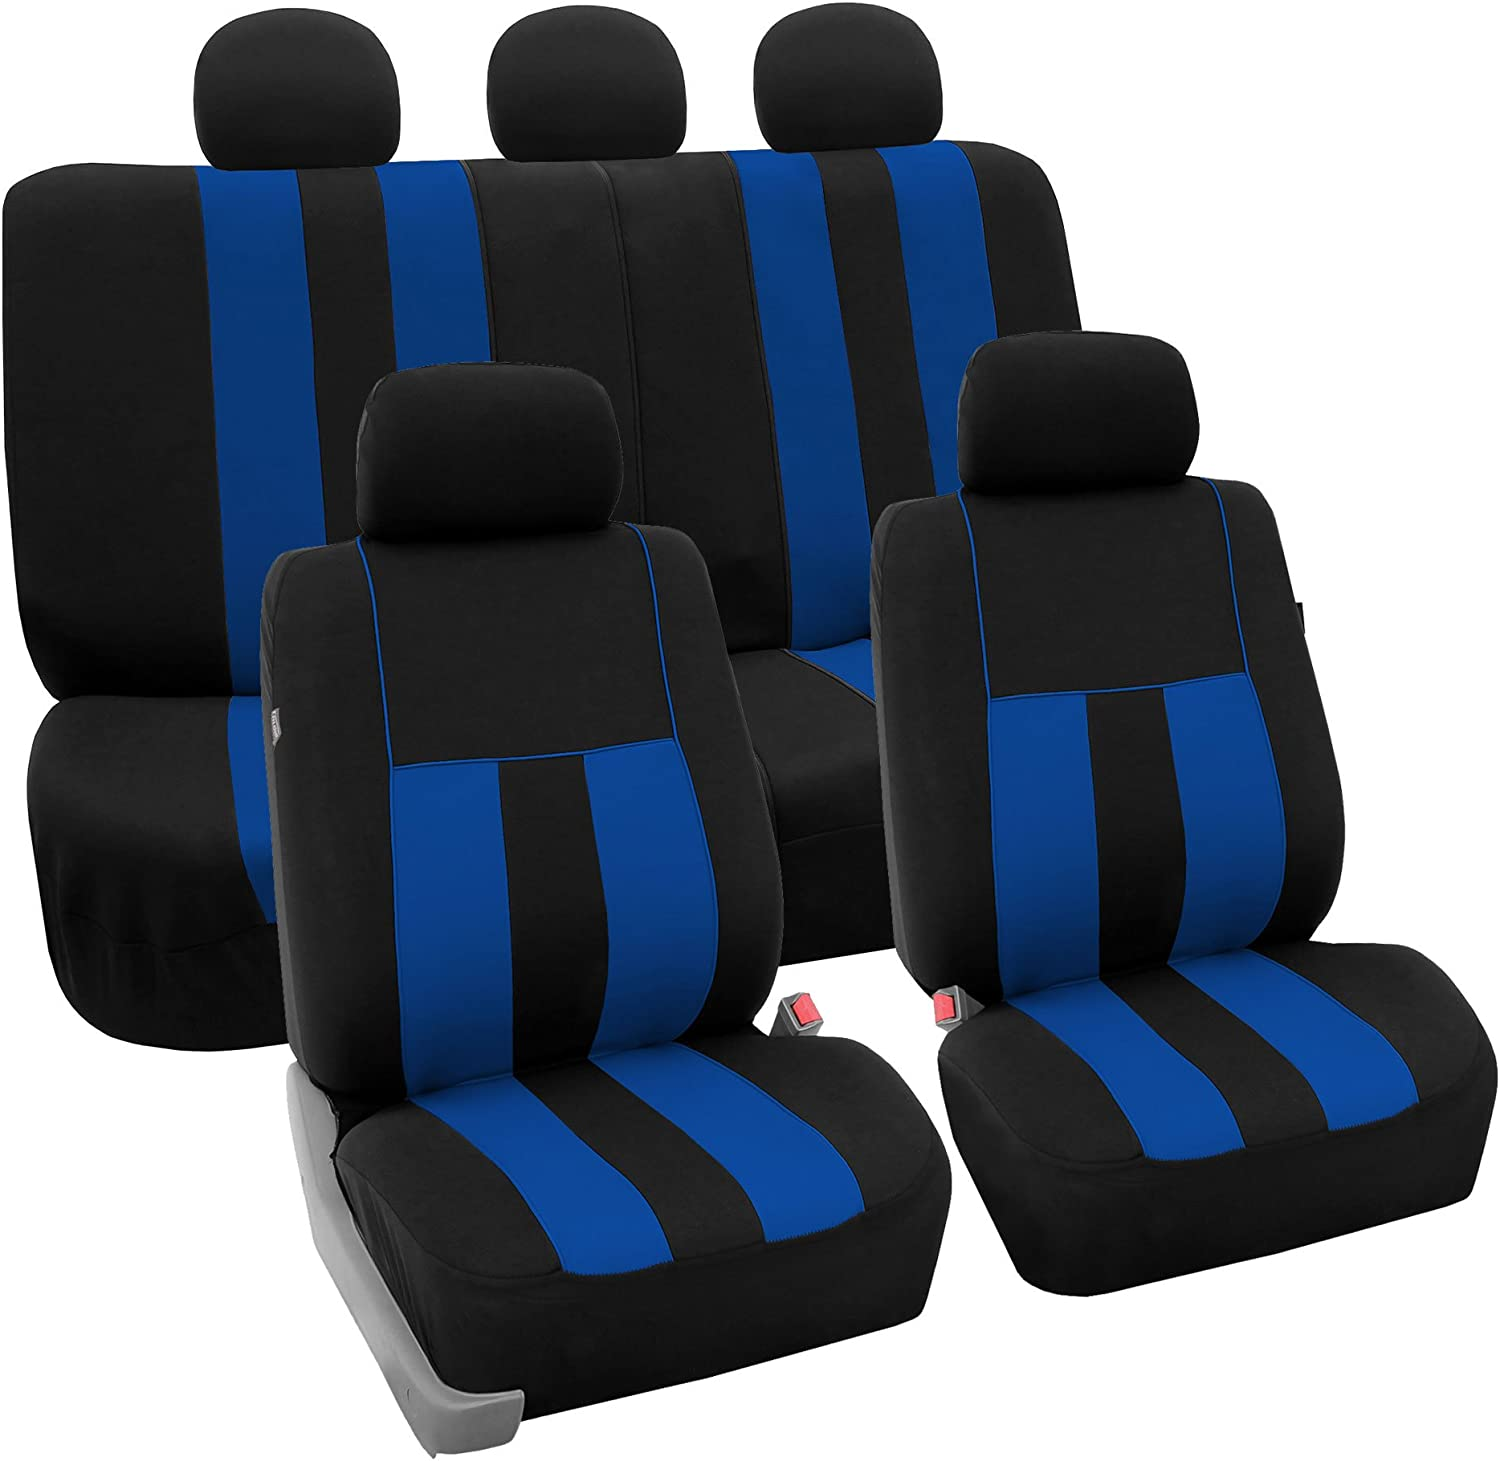 FH Group FB036BLUE115 Seat Cover Airbag Compatible and Split Bench Blue